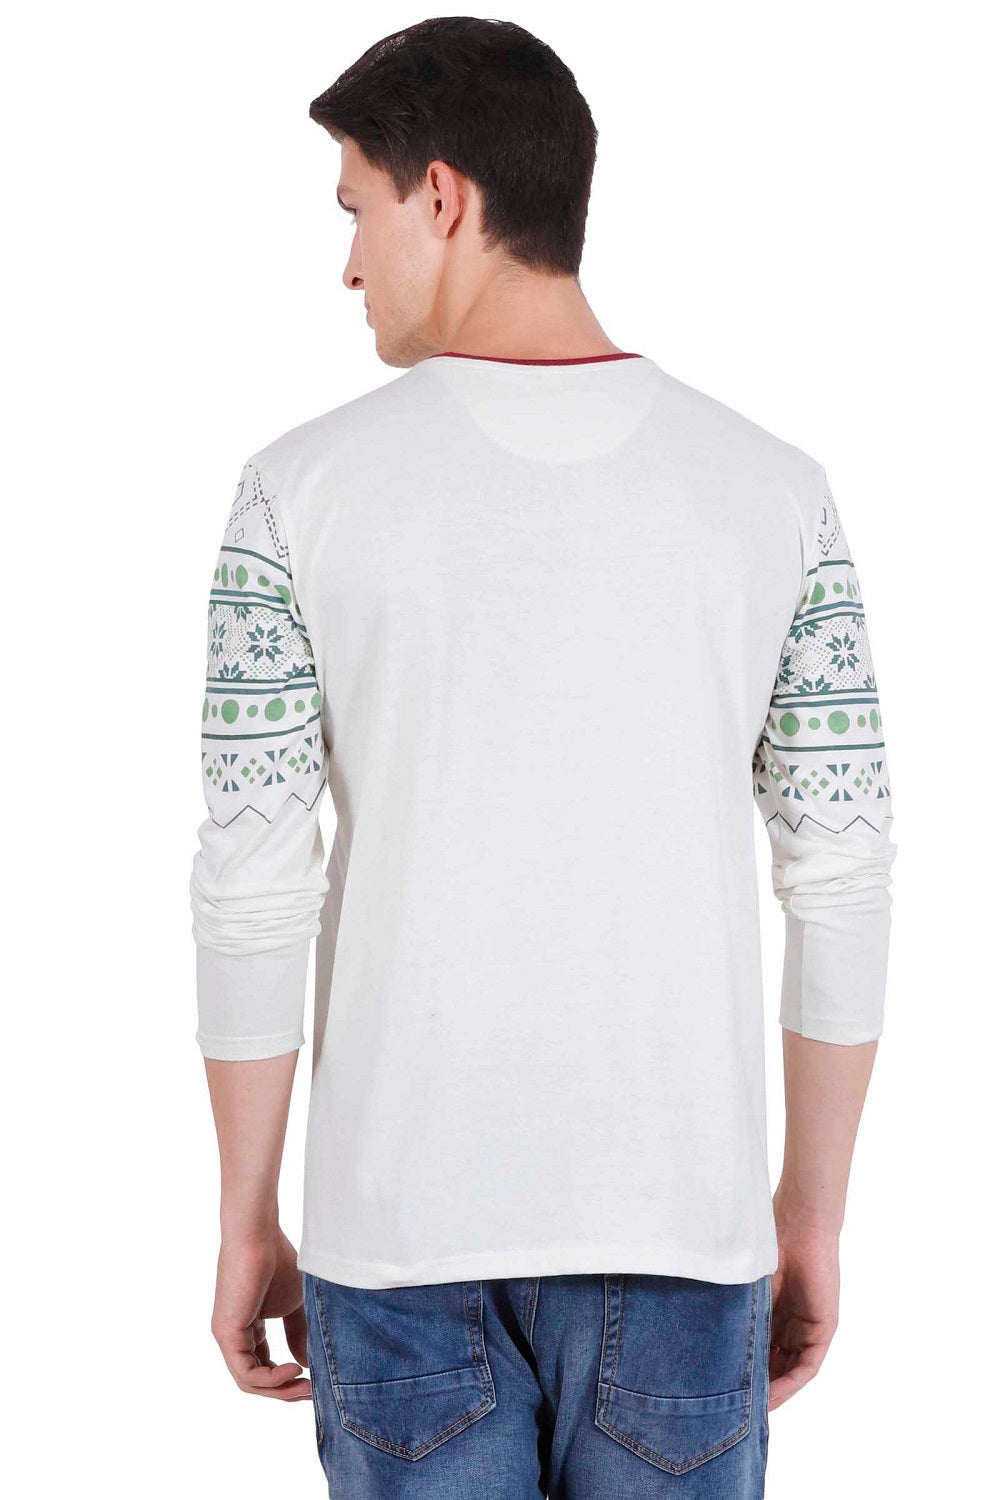 Hunt and Howe Men's Round Neck Full Sleeve Printed T-Shirt